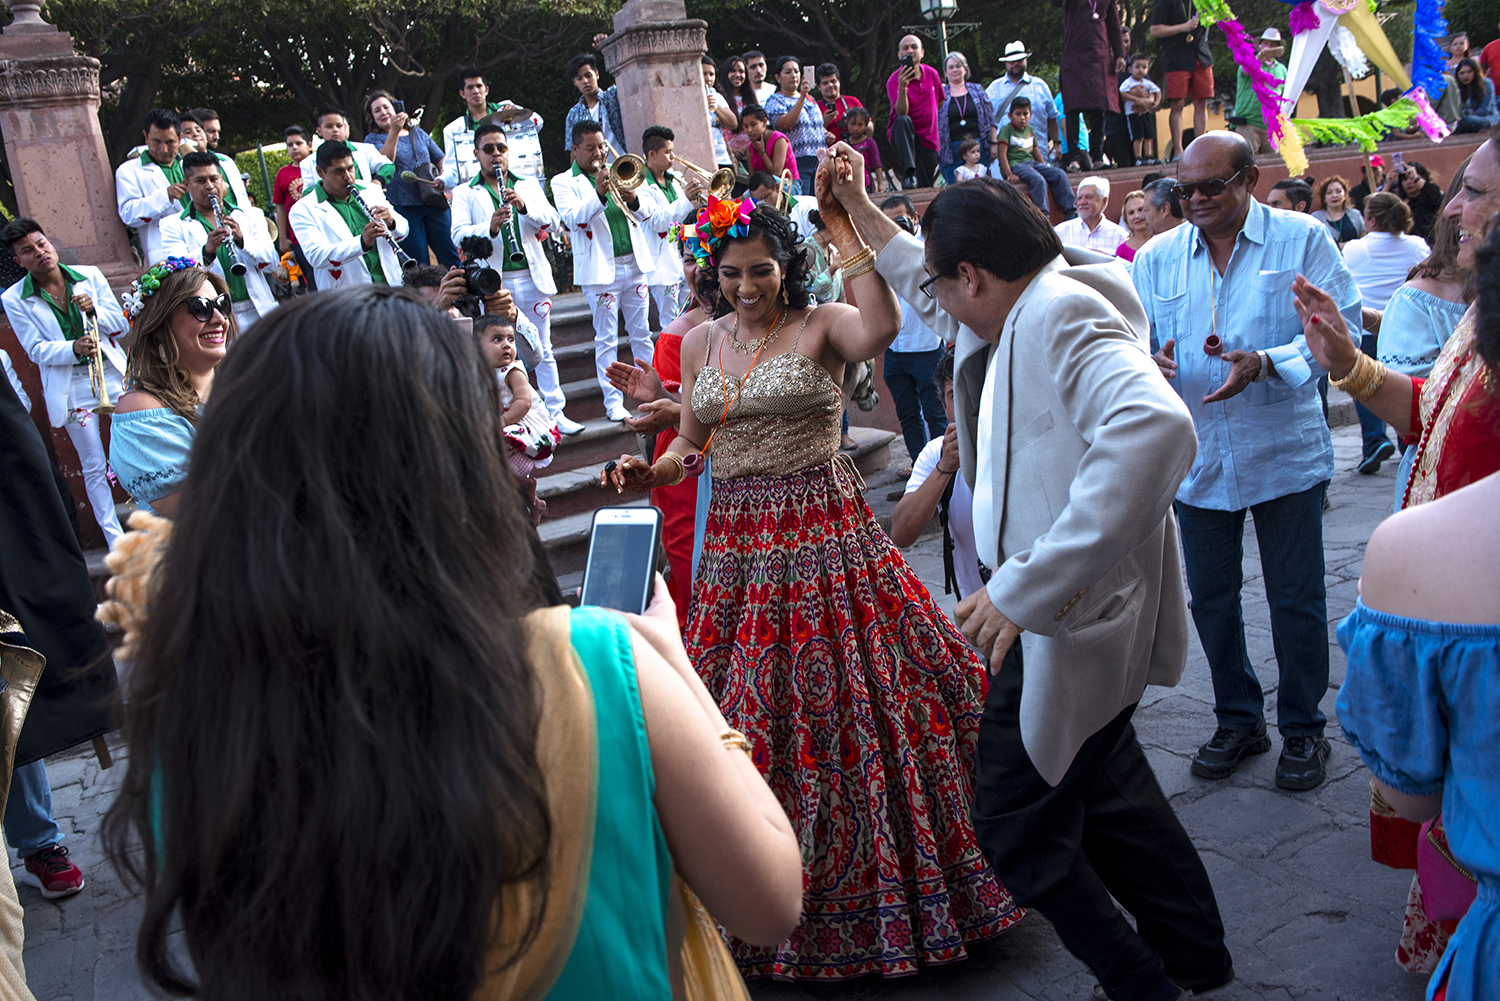 indian_wedding_san_miguel_de_allende_chio_garcia_photographer (9).jpg